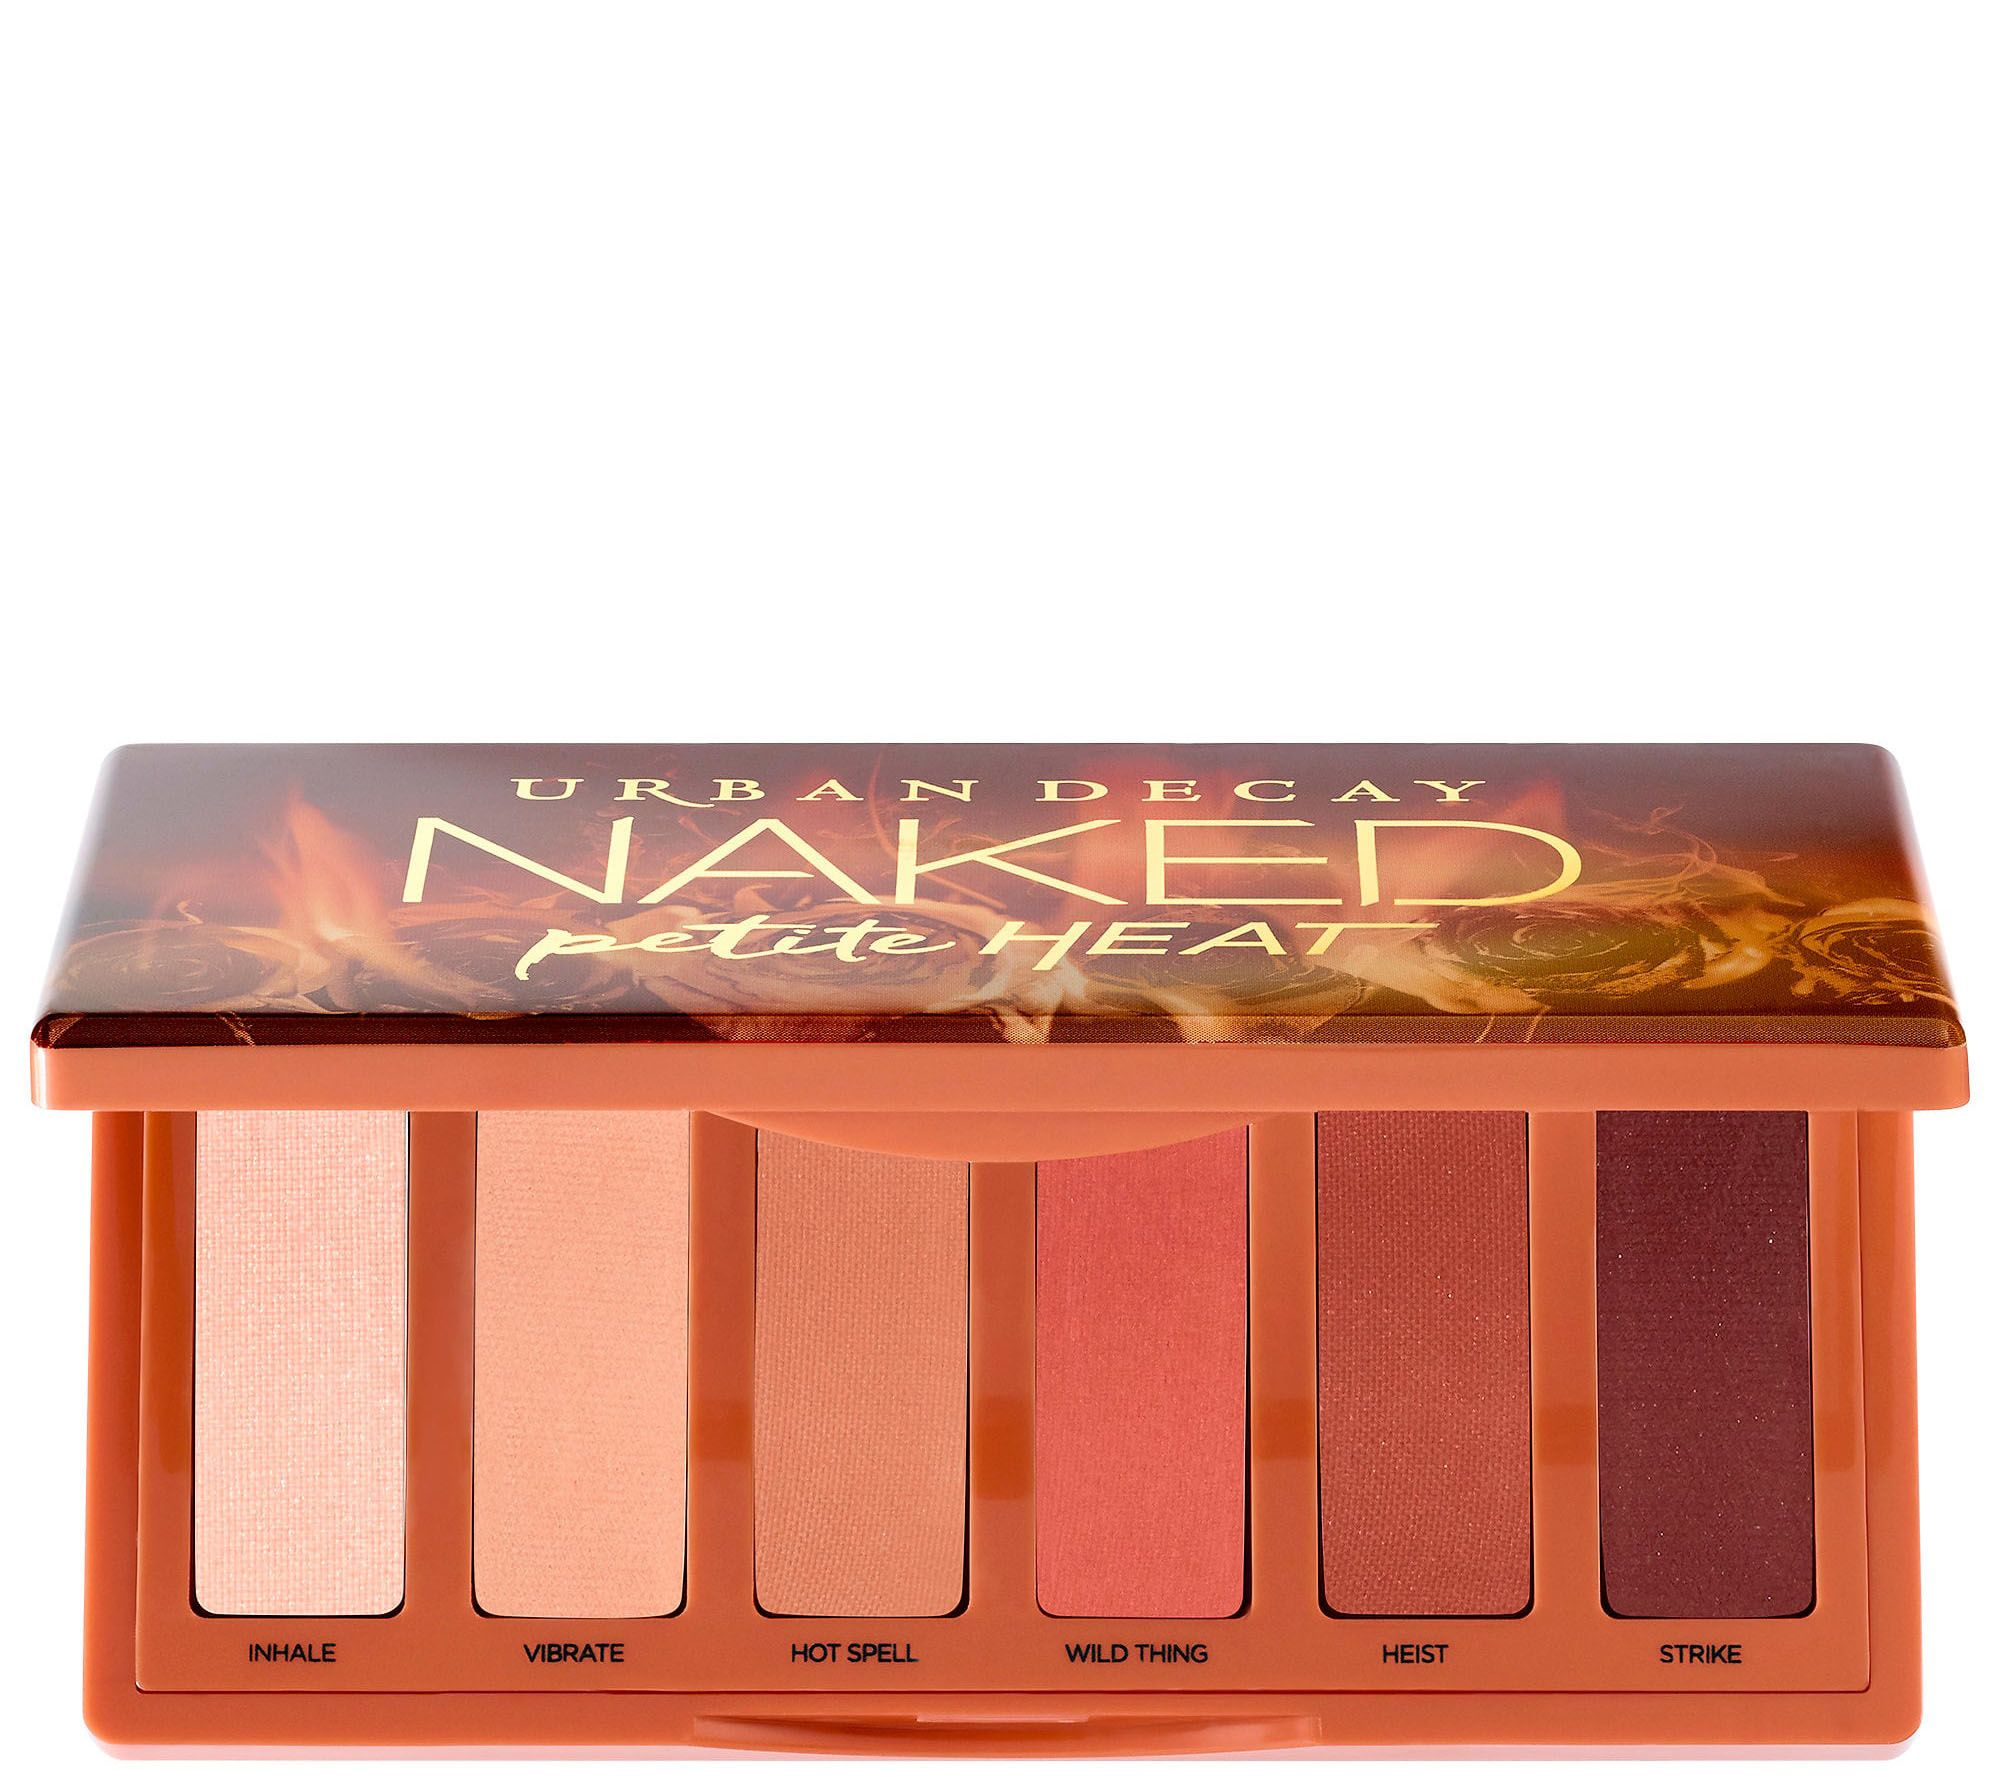 Urban Decay Naked Petite Heat Palette Page 1 Qvc Com